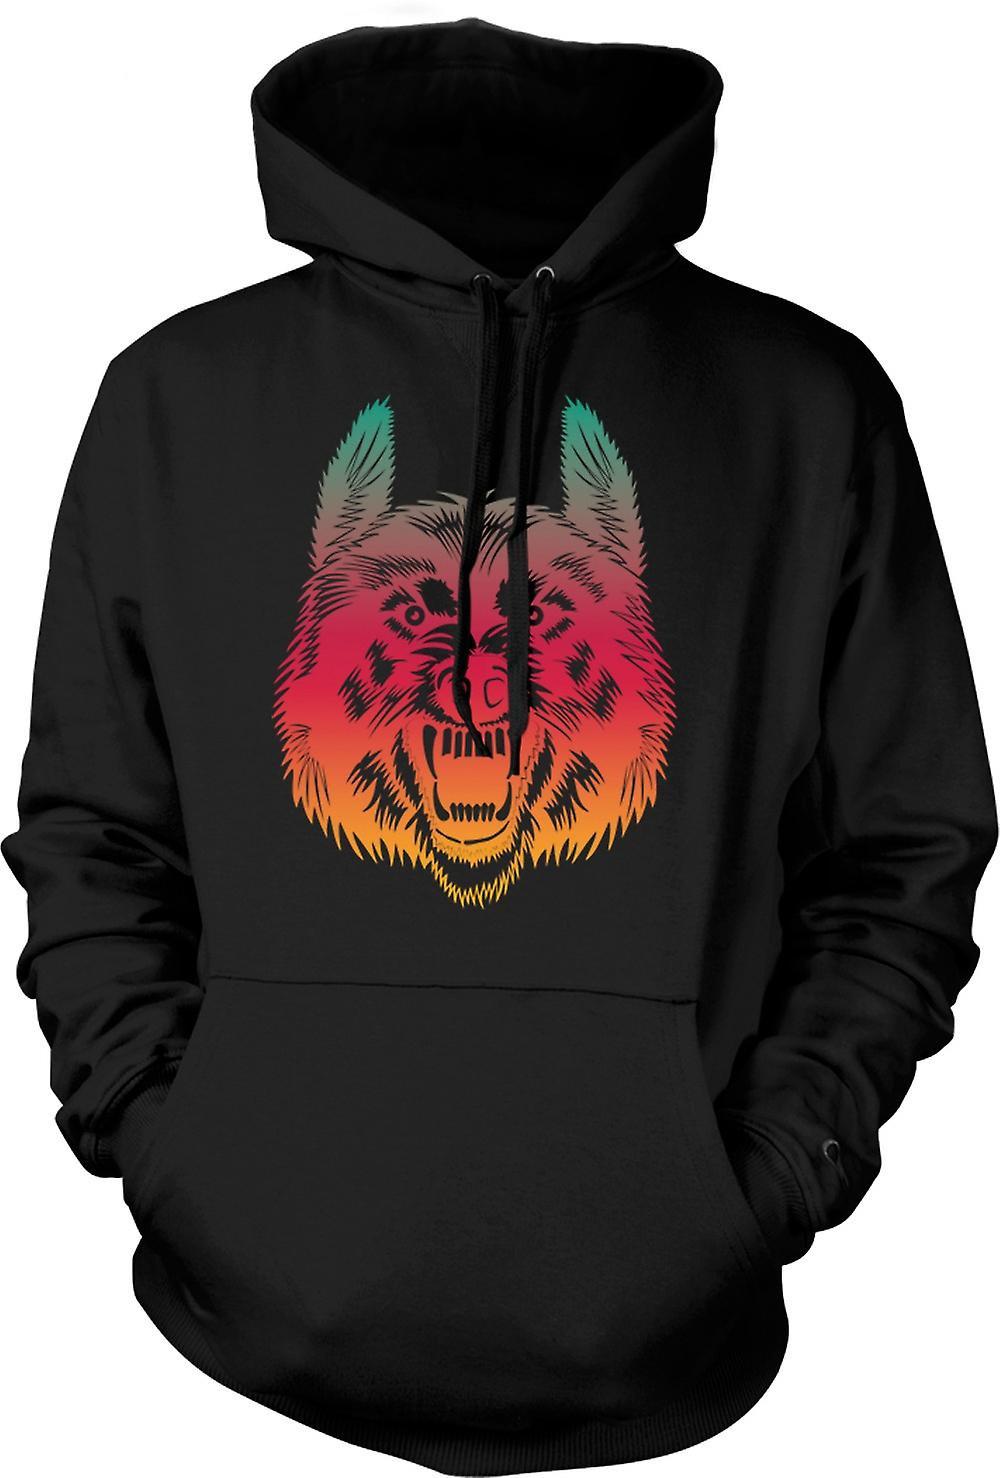 Mens Hoodie - Wanna Join My Wolf Pack - Funny